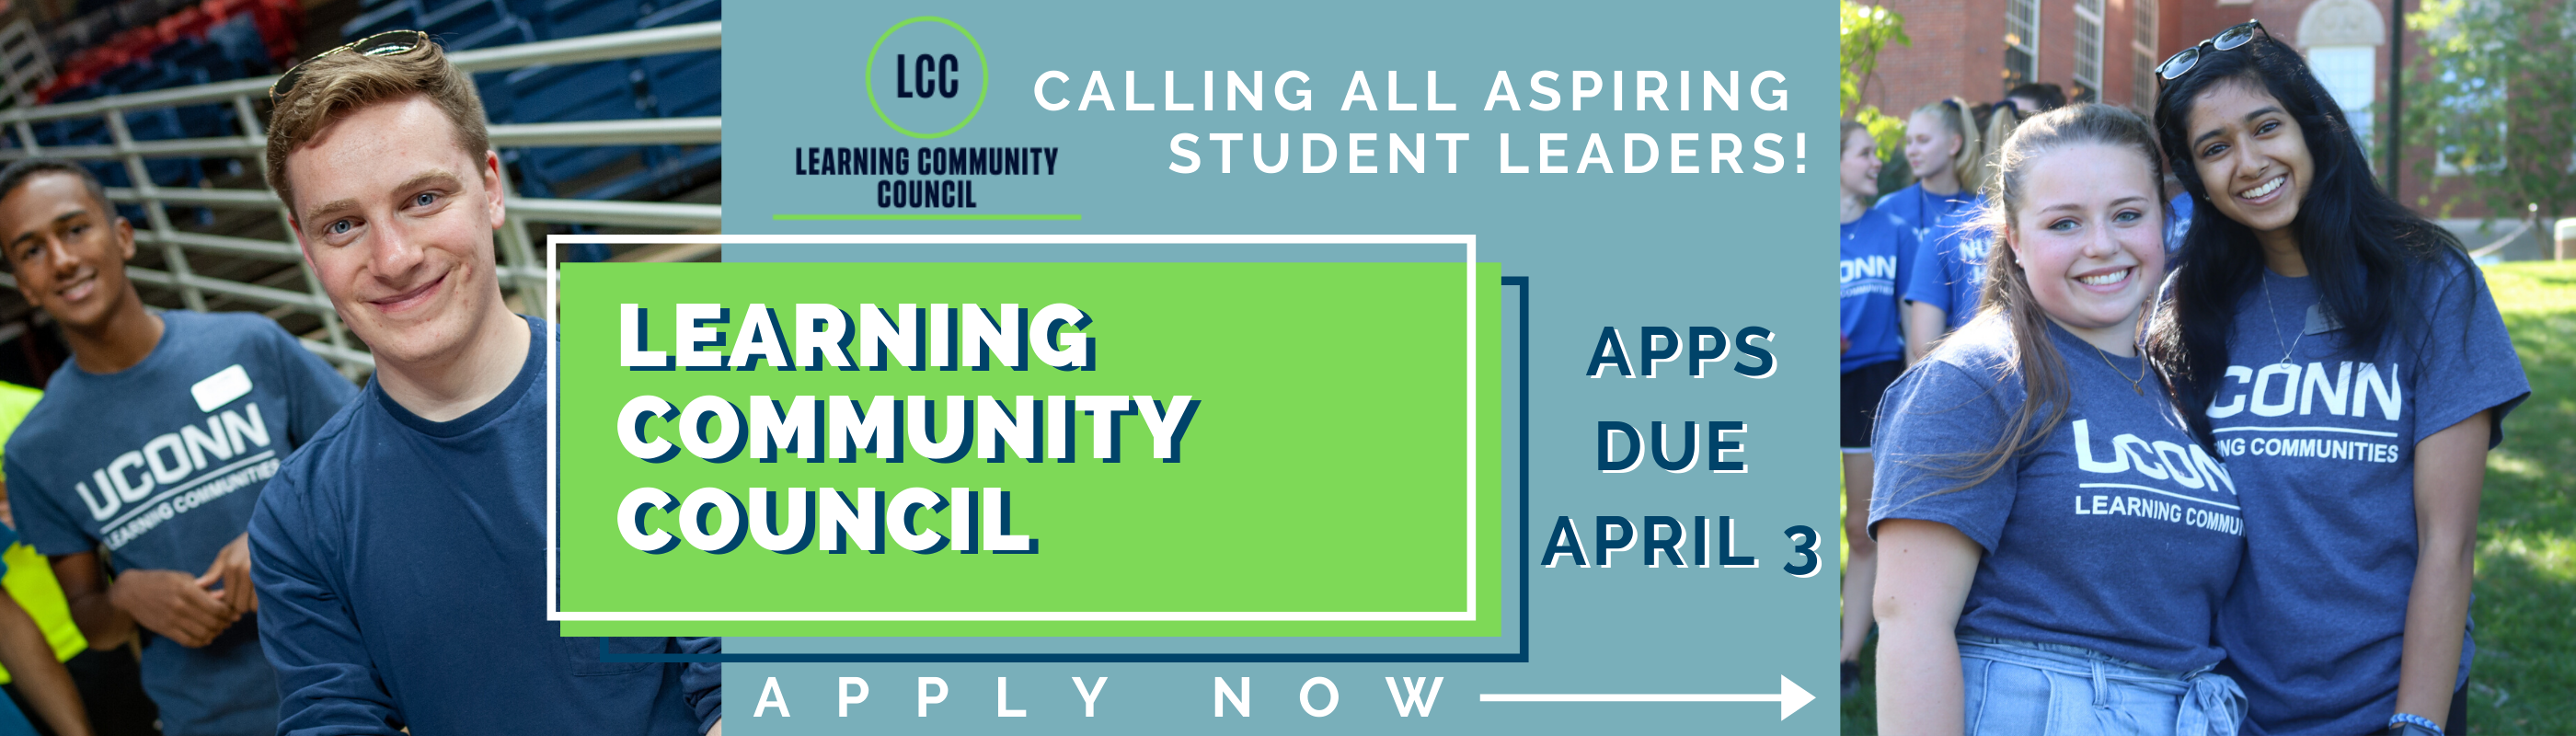 Learning Community Council 2020-21 Application